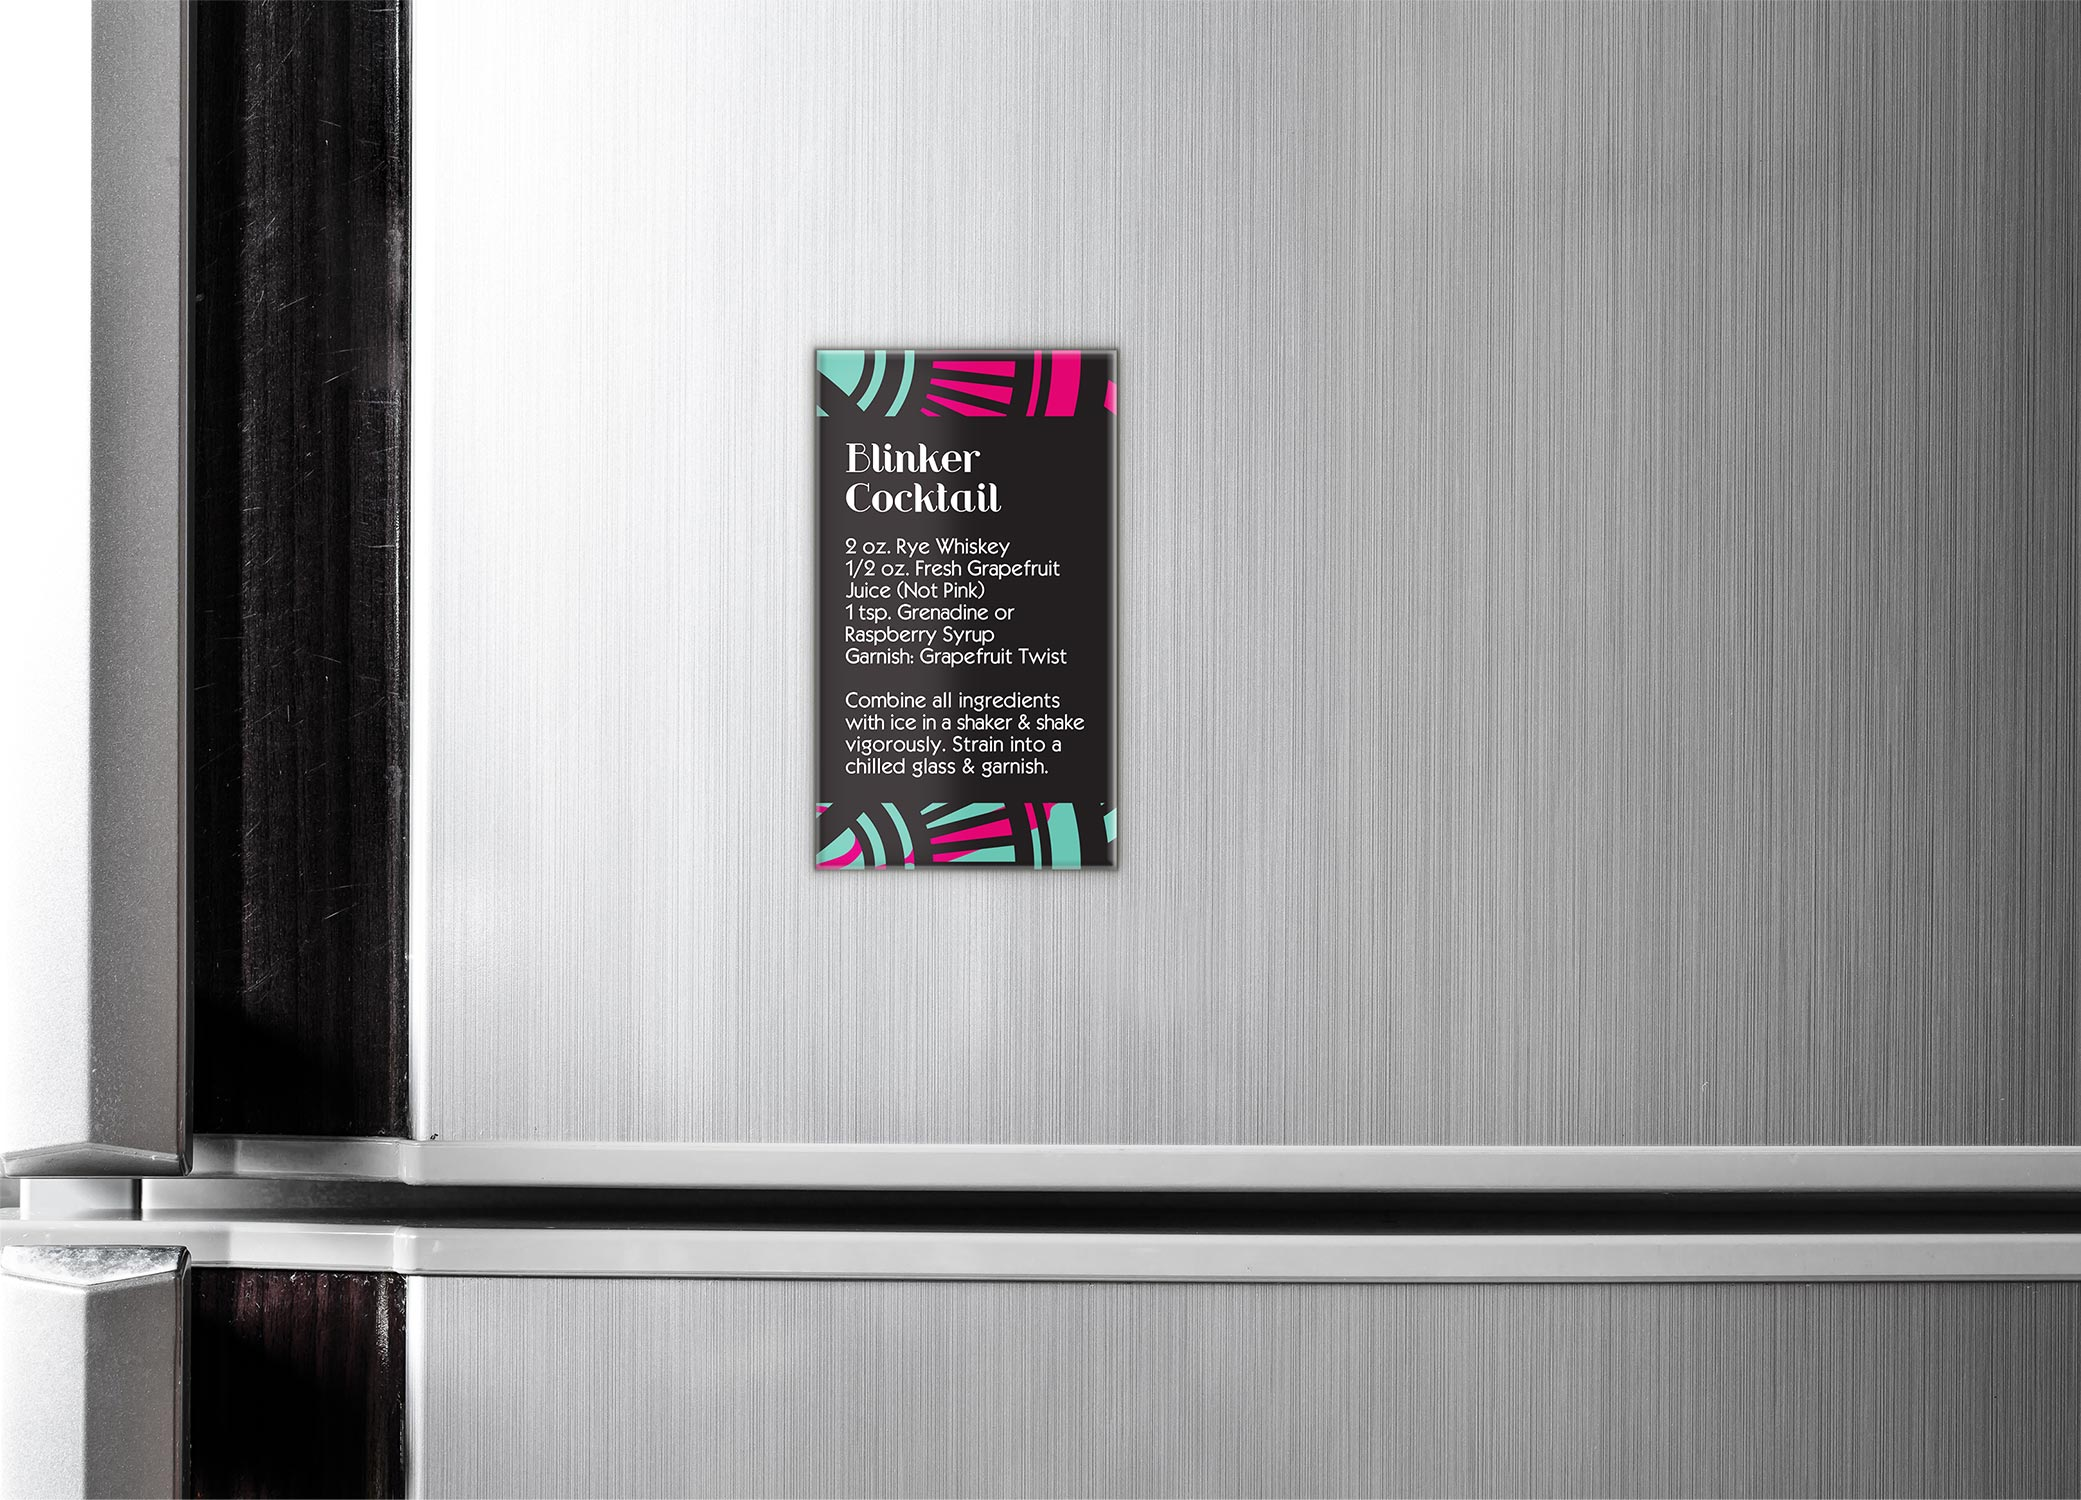 42 Dubonnet Blinker Cocktail magnet design against a stainless steal refrigerator showcasing the beverage's ingredients on how to create.